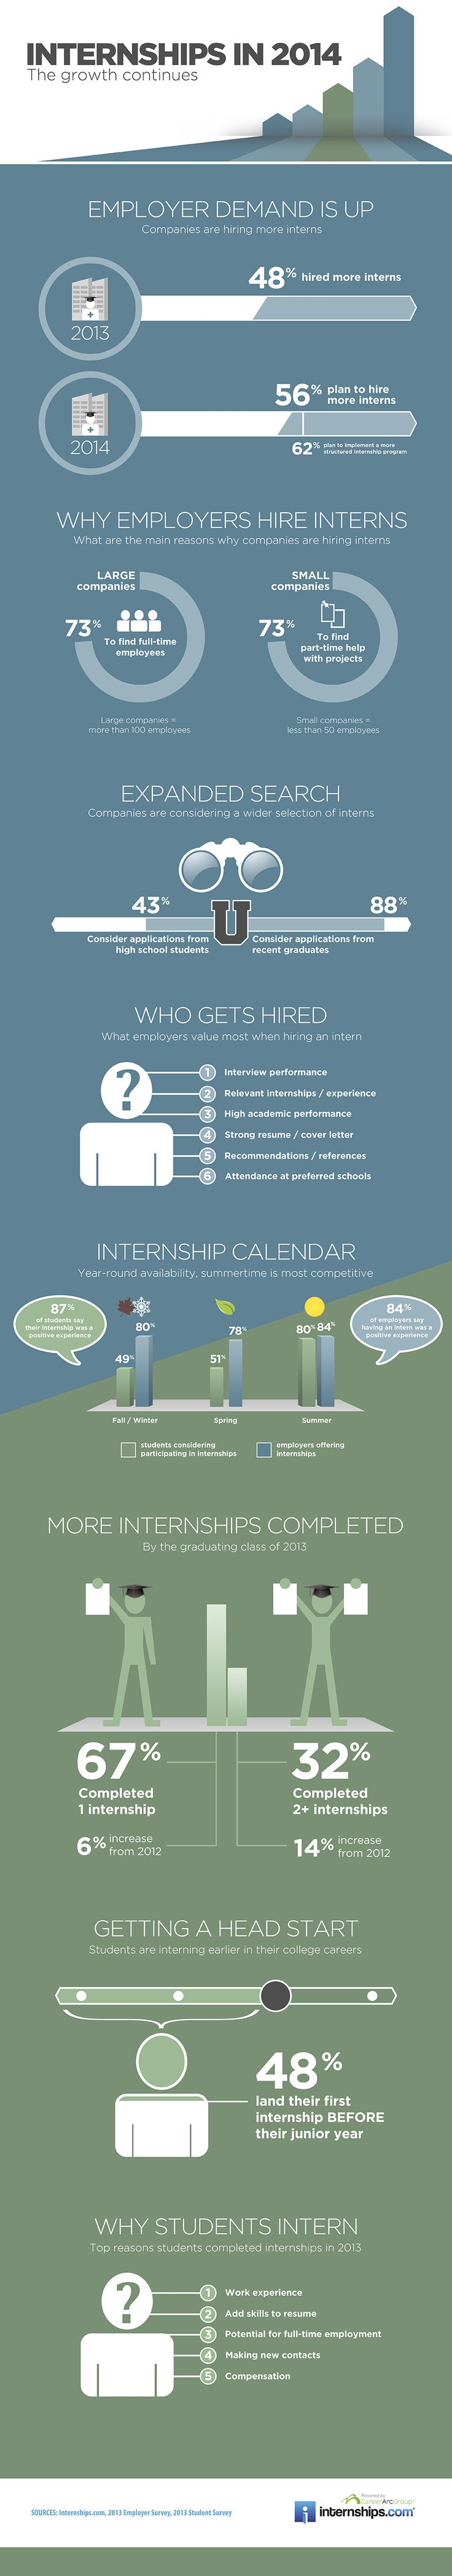 internships infographic 2014 Infographic Internships Survey and